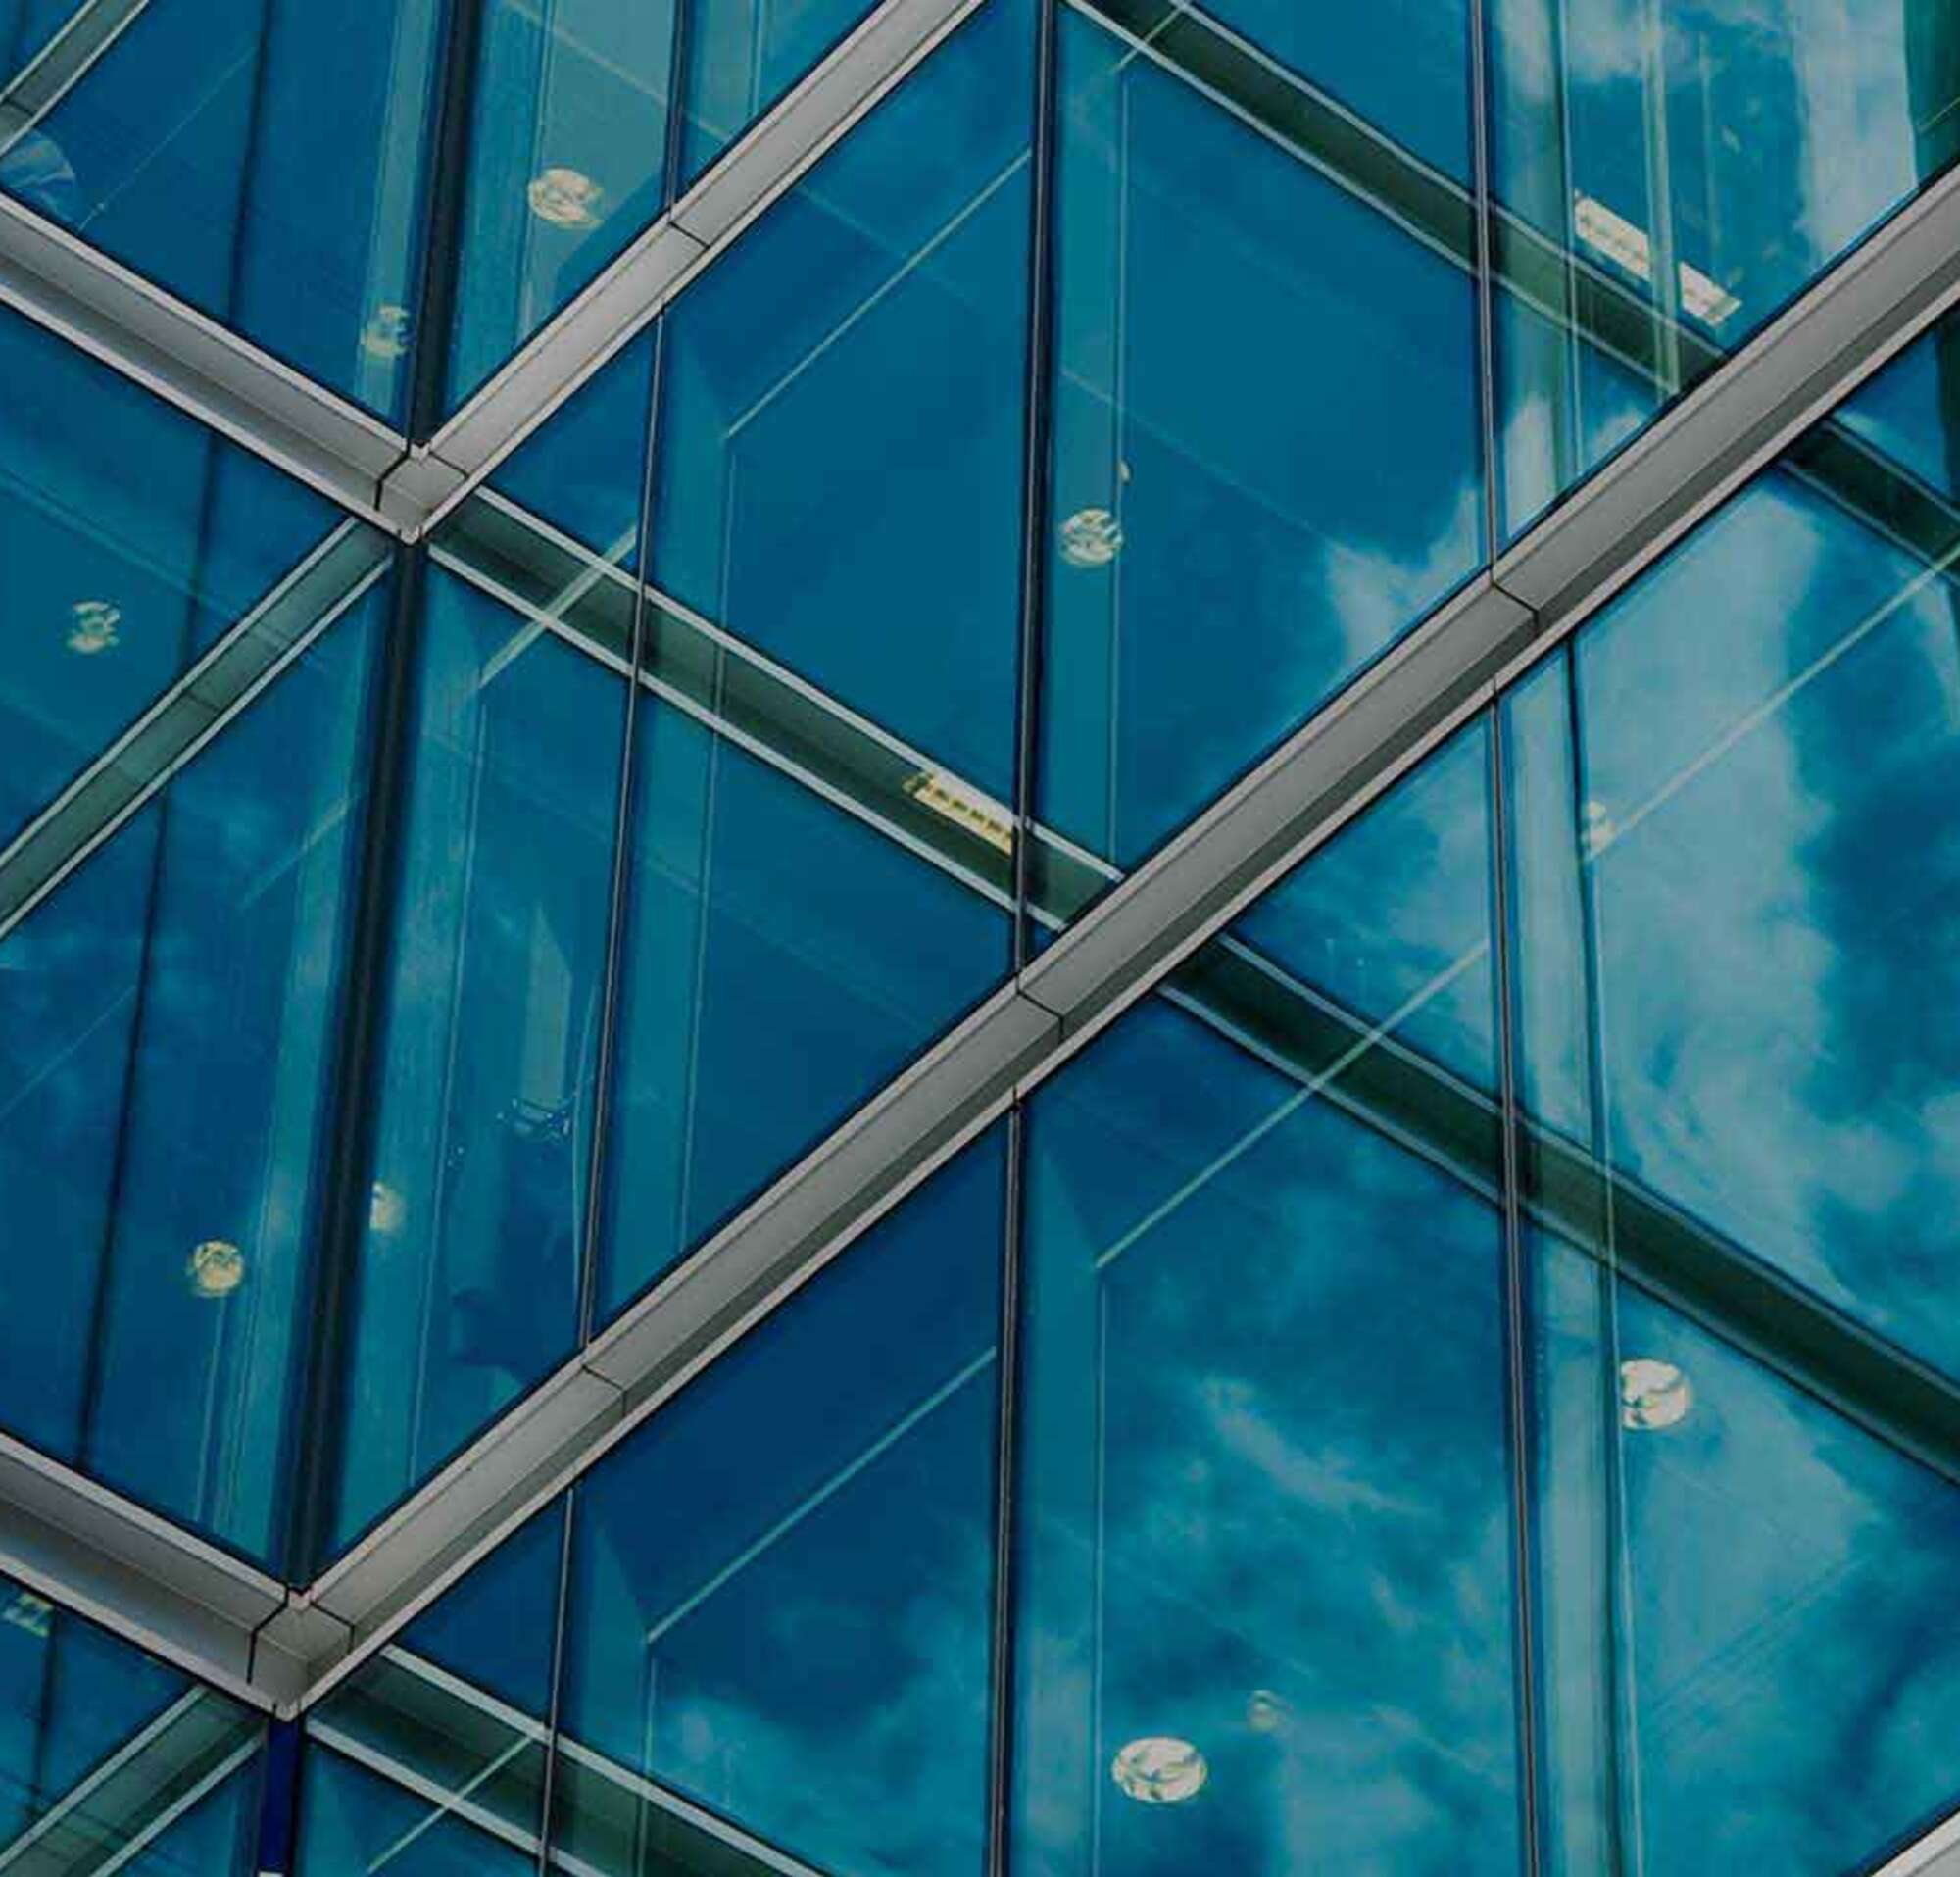 Glass windowed building with text introducing DocuSign products, integrations and APIs.